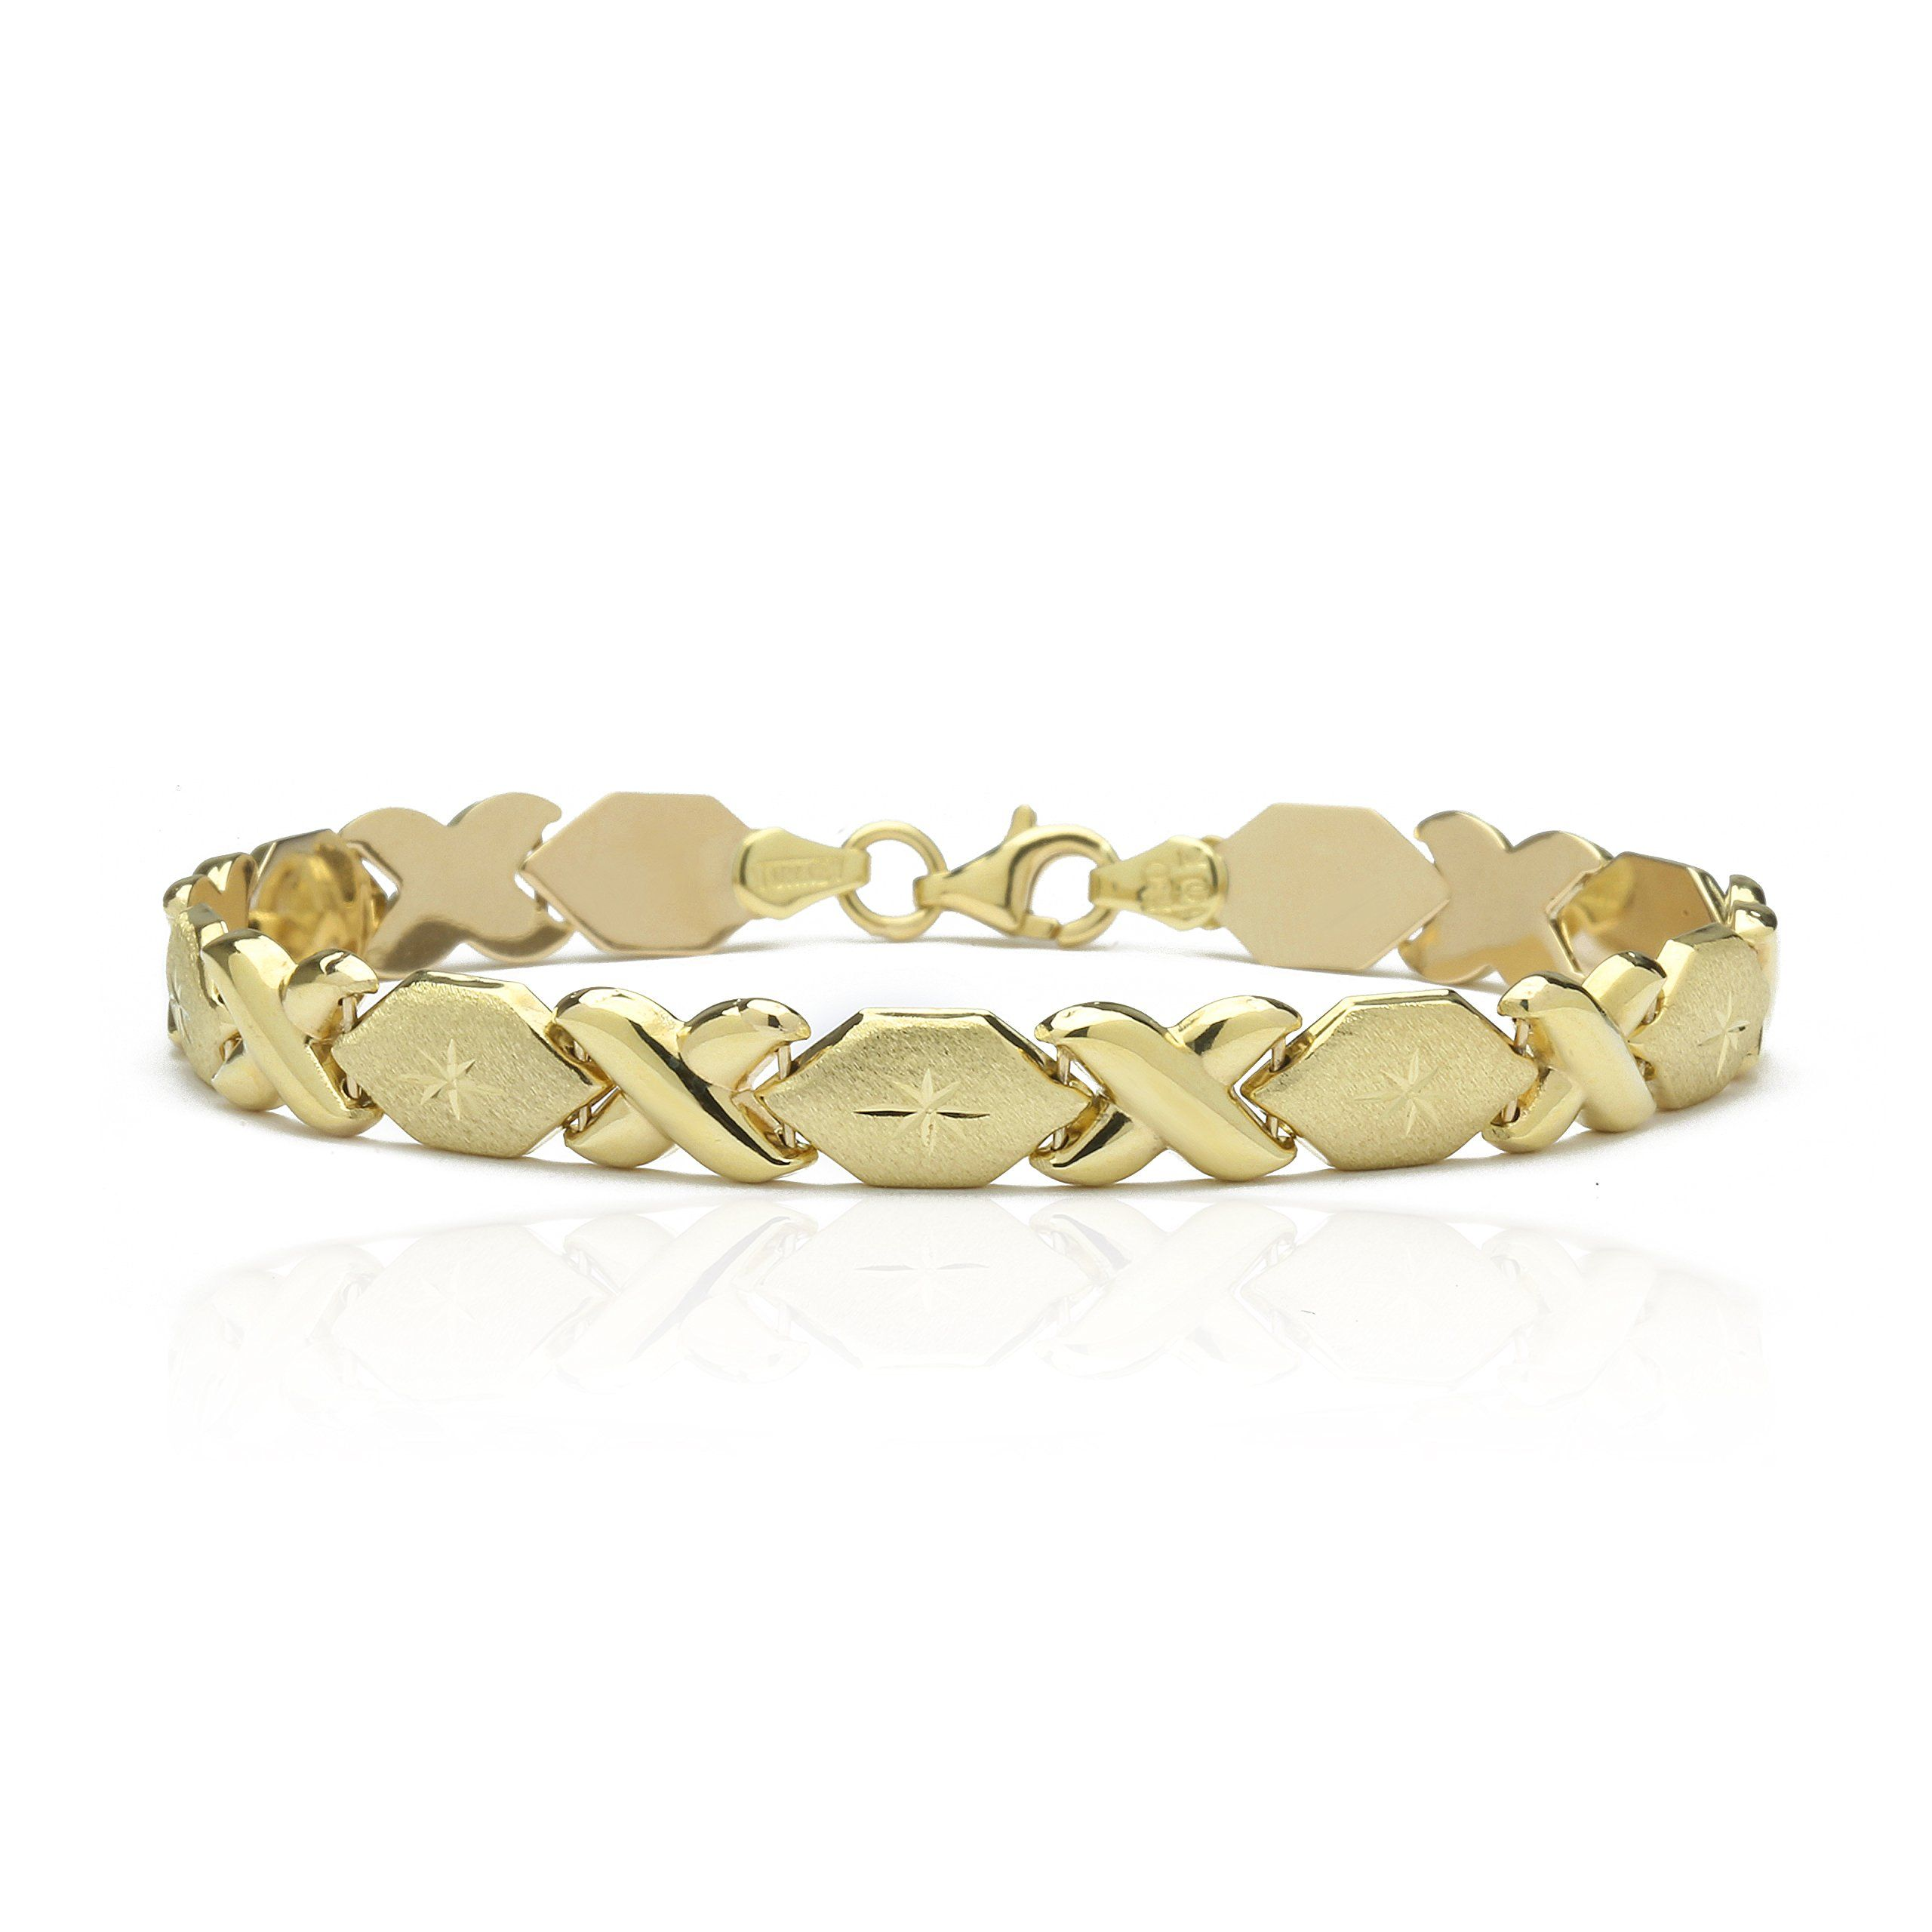 bark anticlastic s bangle products inch johnsbrana brass brana nu bangles gold john bracelet